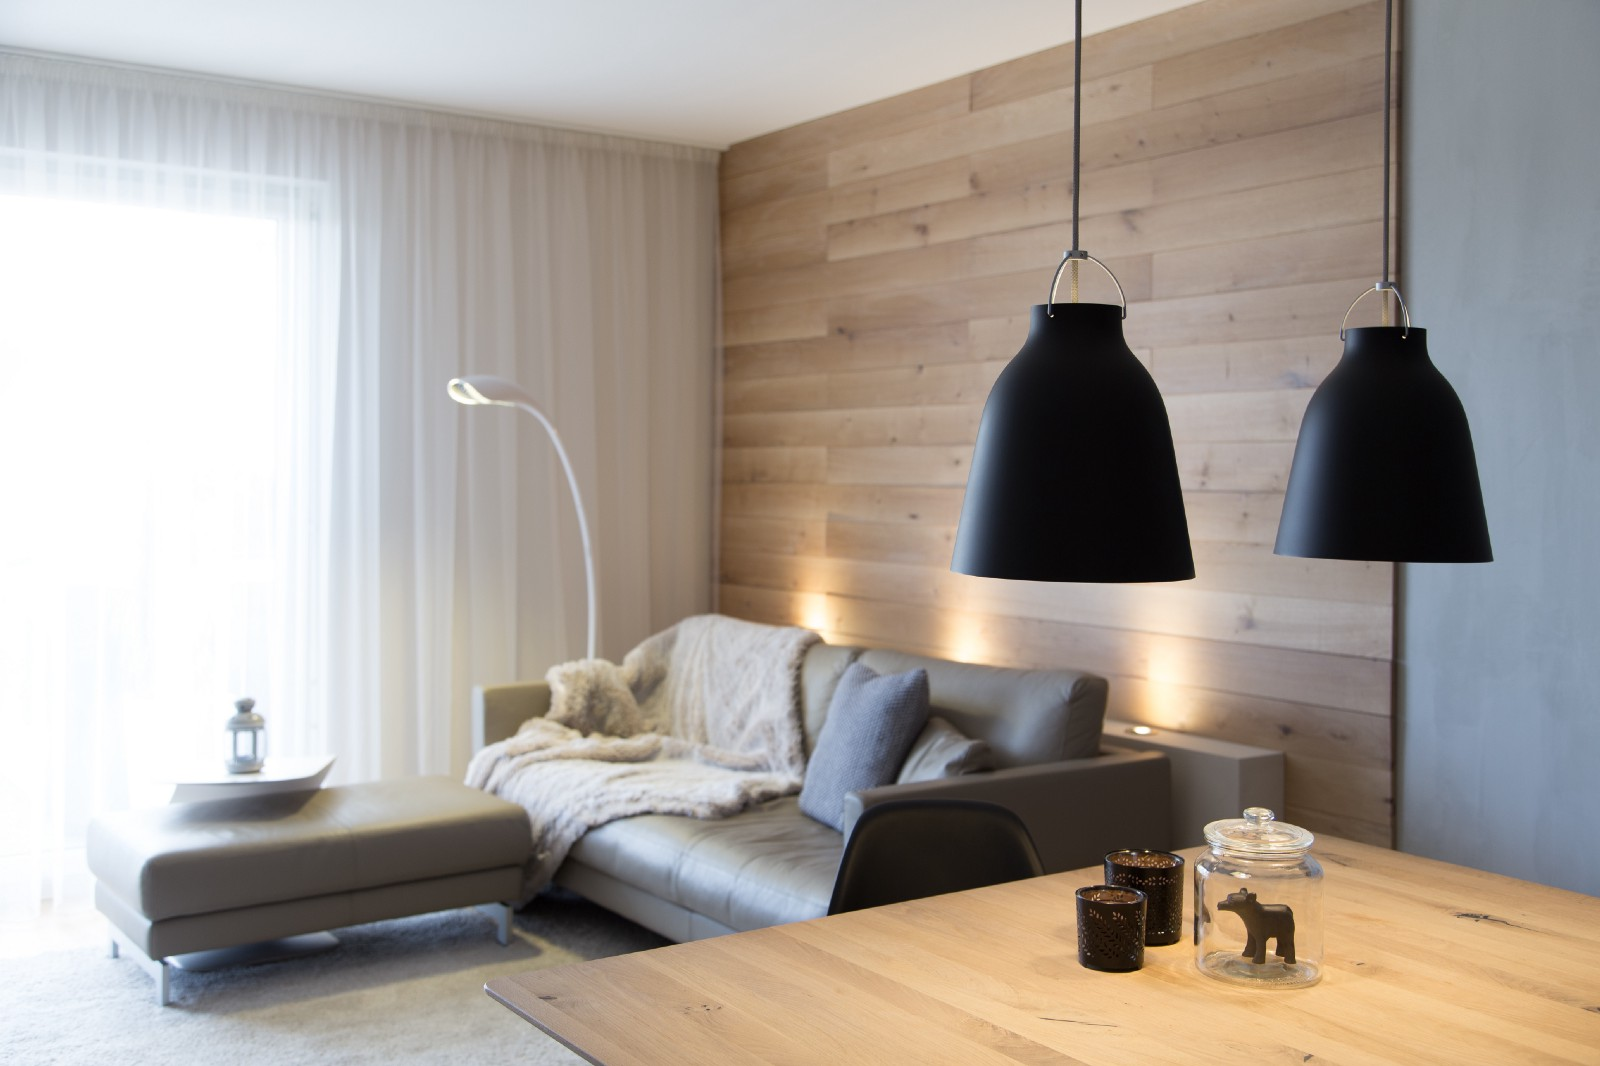 nat rlich wohnen mit stil moderne wohnideen f r holz und naturt ne. Black Bedroom Furniture Sets. Home Design Ideas